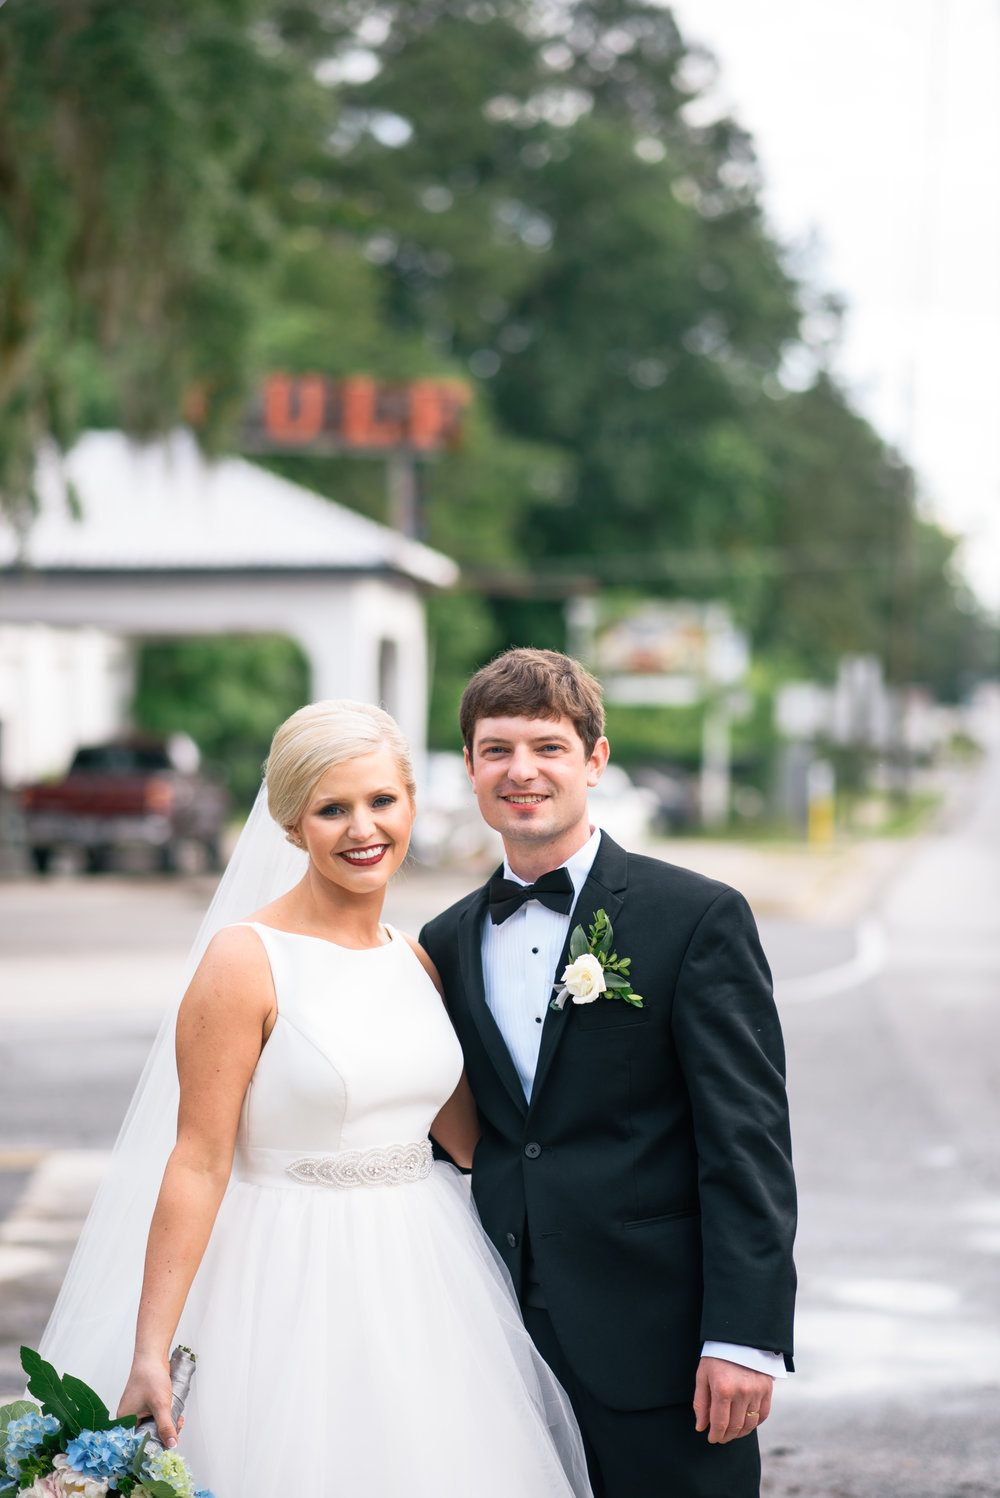 ali-and-jared-savannah-georgia-may-2017-wedding-meg-hill-photo-(503of760).jpg